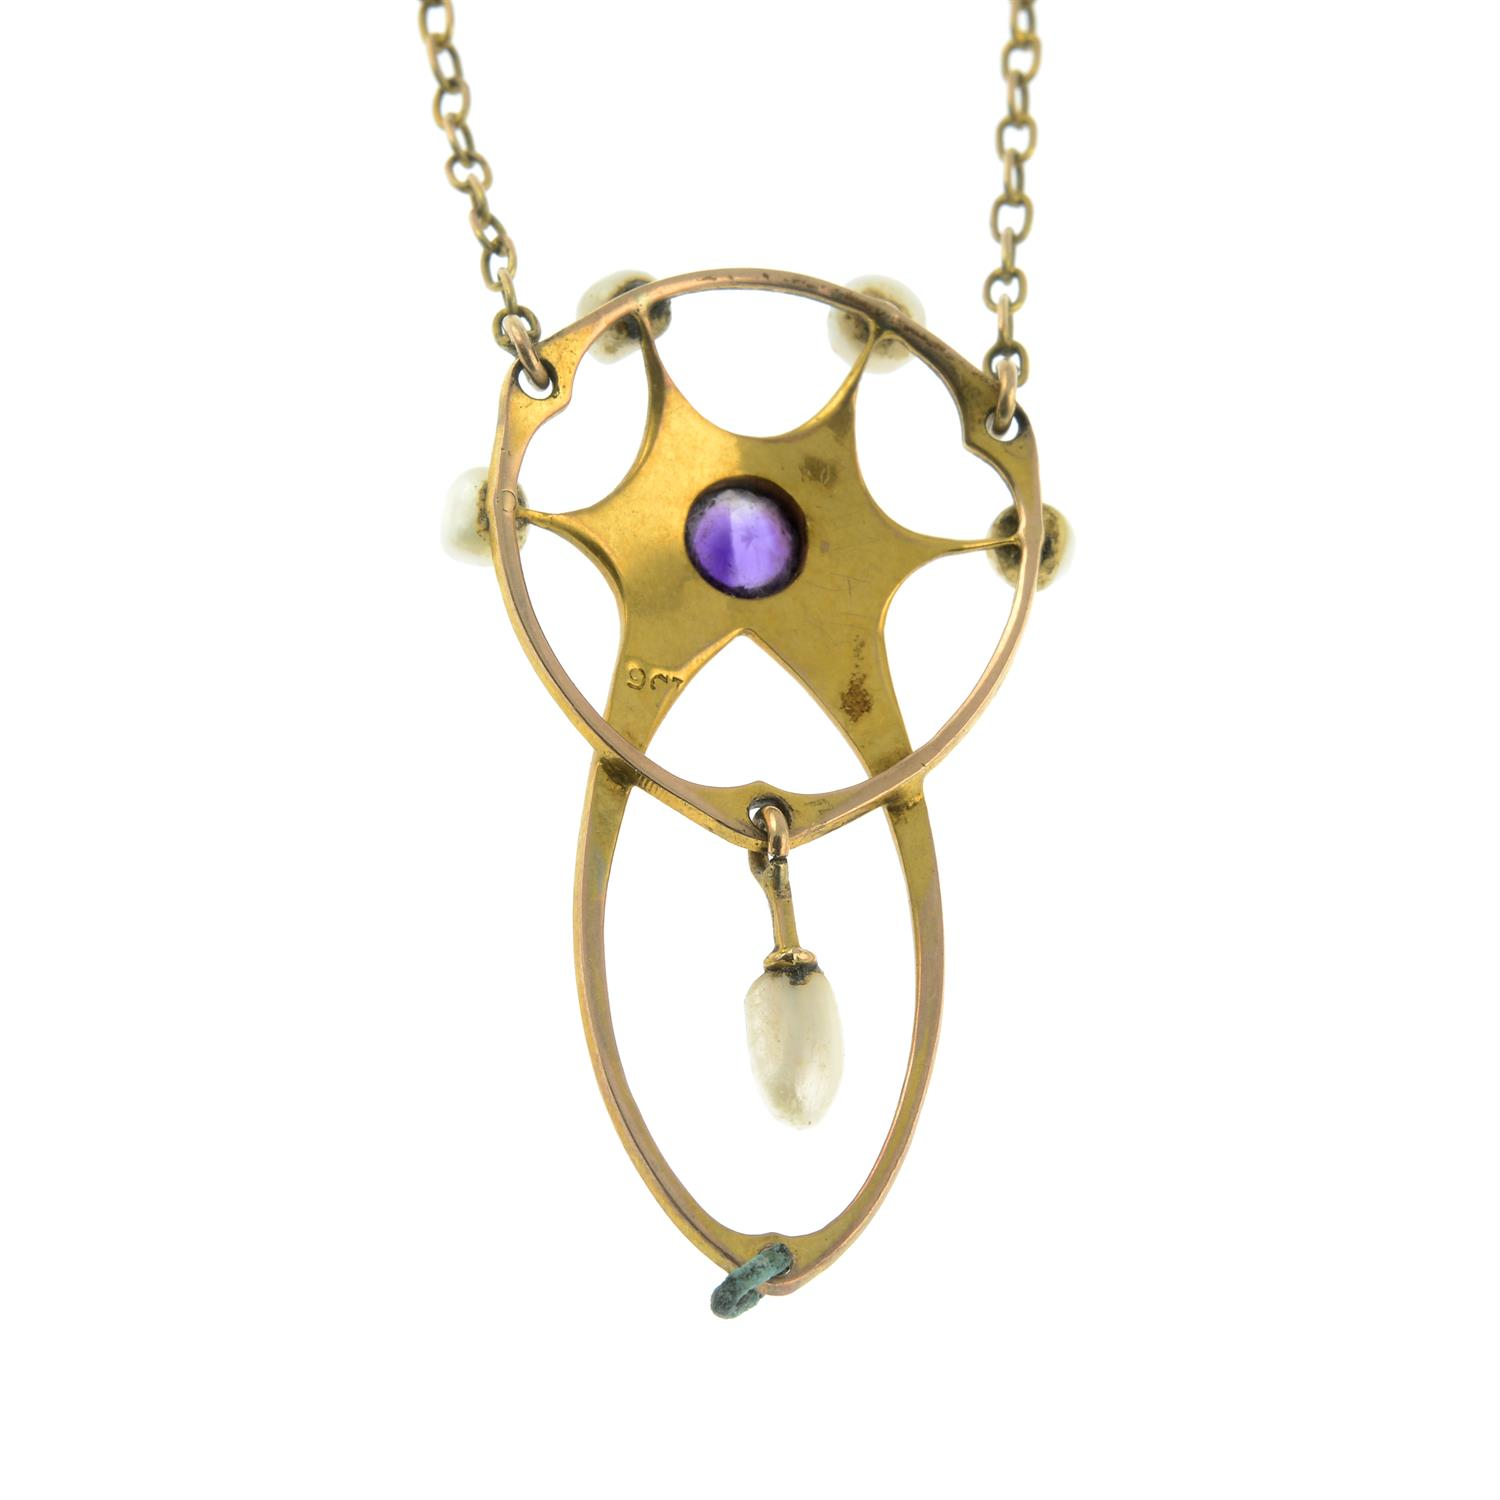 An early 20th century Art Nouveau 9ct gold amethyst and seed pearl necklace. - Image 2 of 3